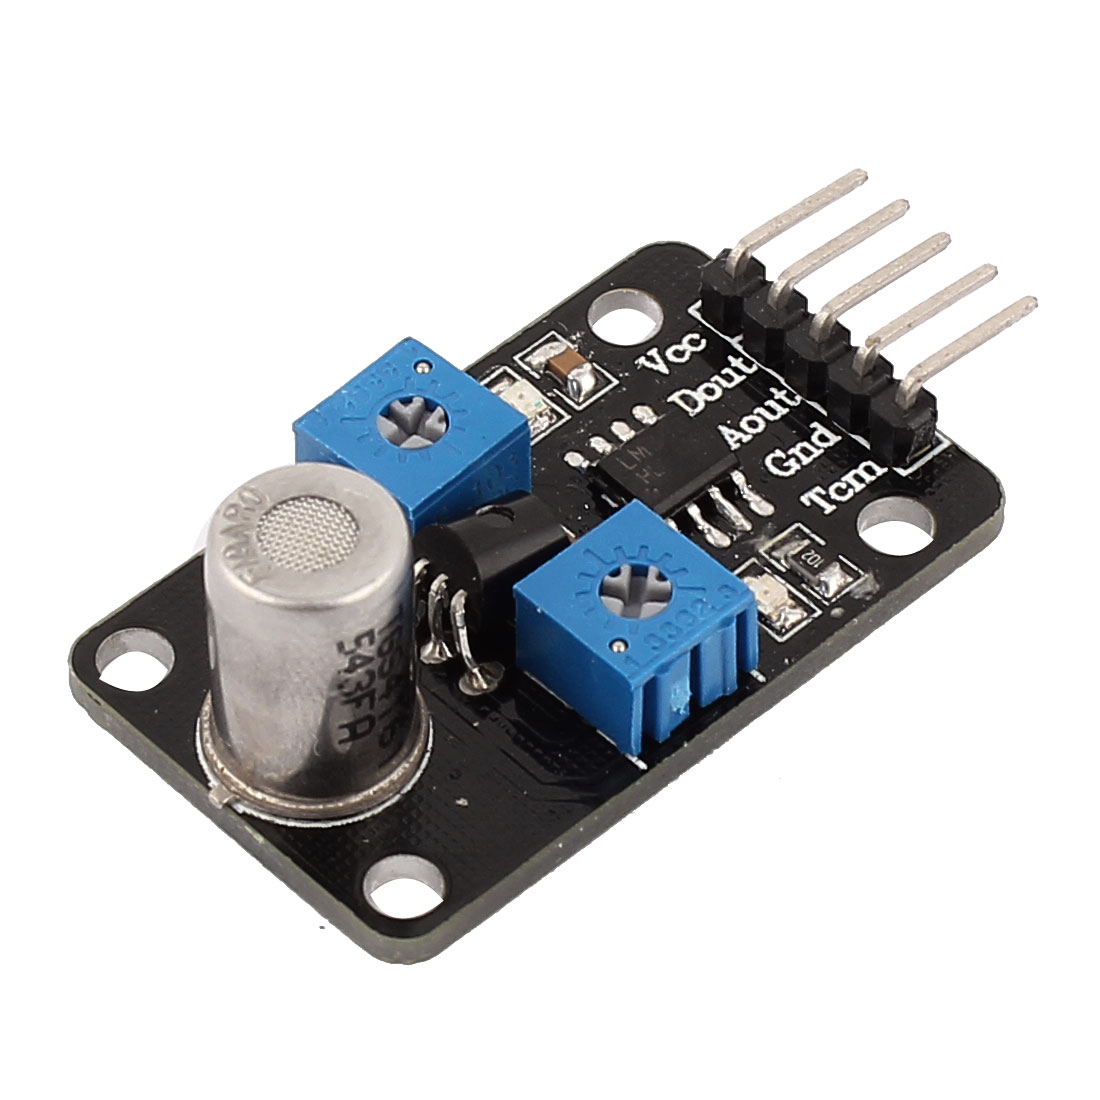 CO2 Carbon Dioxide Sensor Module TGS4161 Voltage Probe